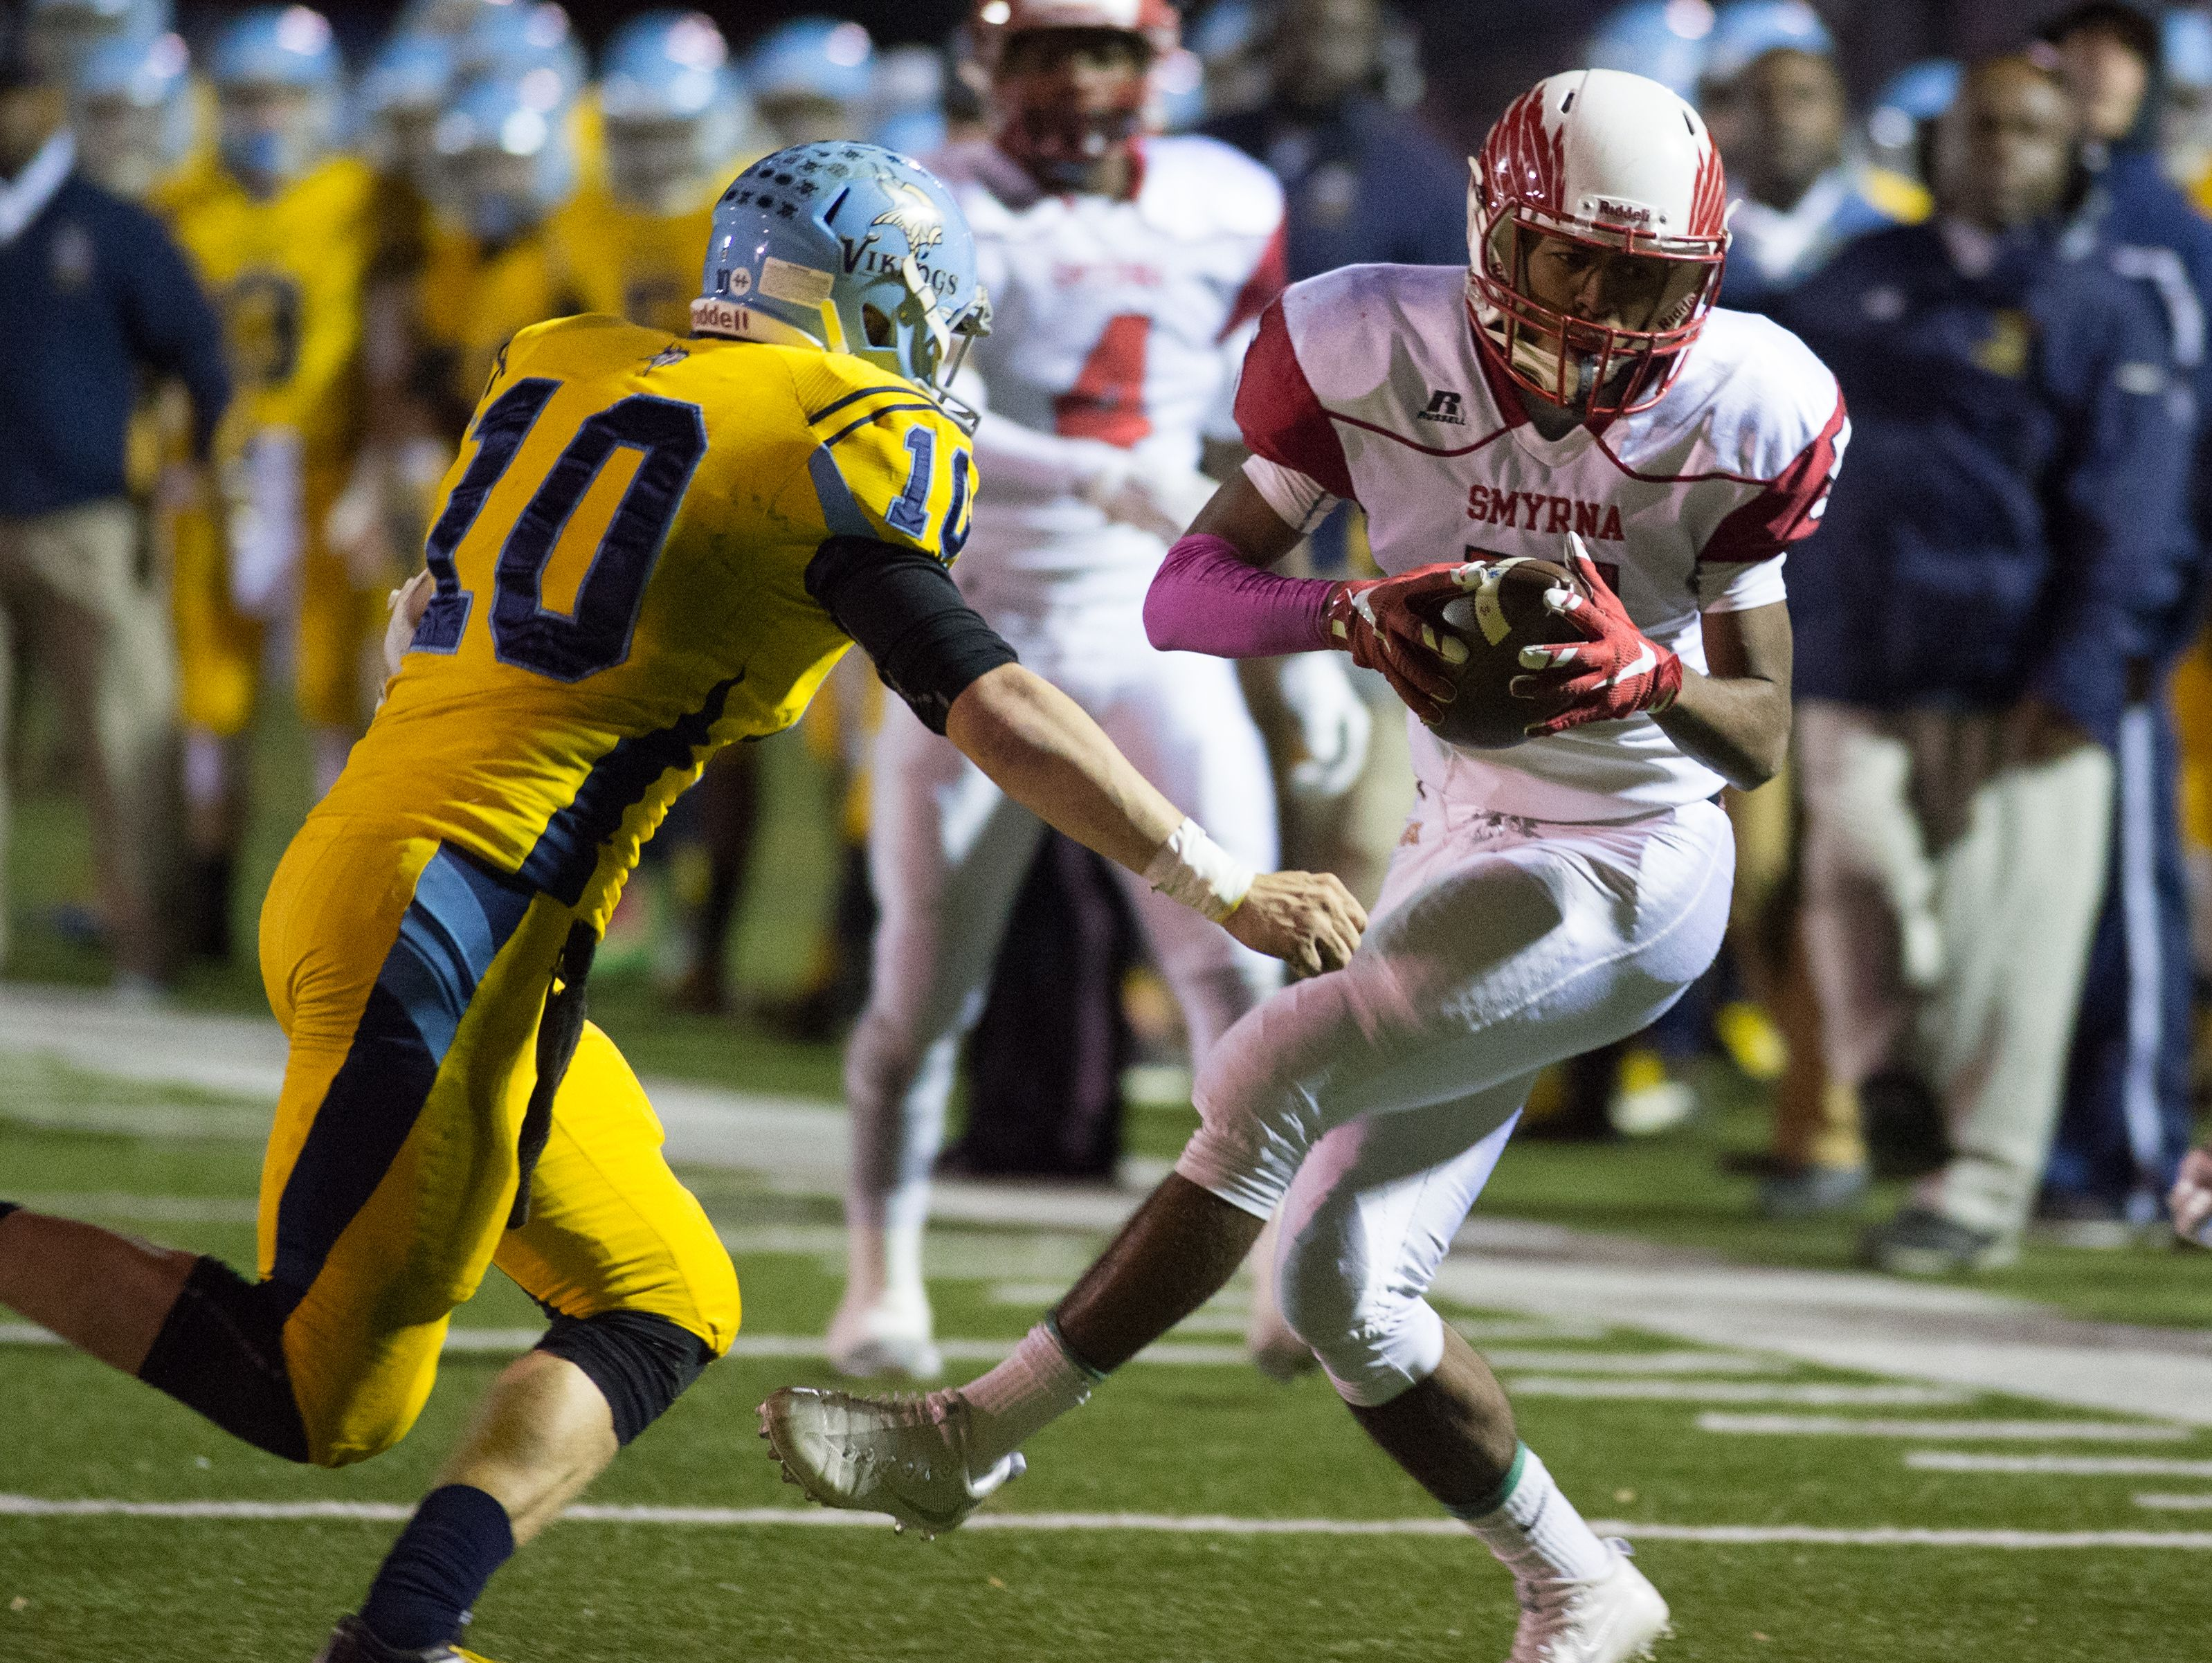 Smyrna's Emon Roberts (5) completes a catch near the sideline in their game against Cape Henlopen.